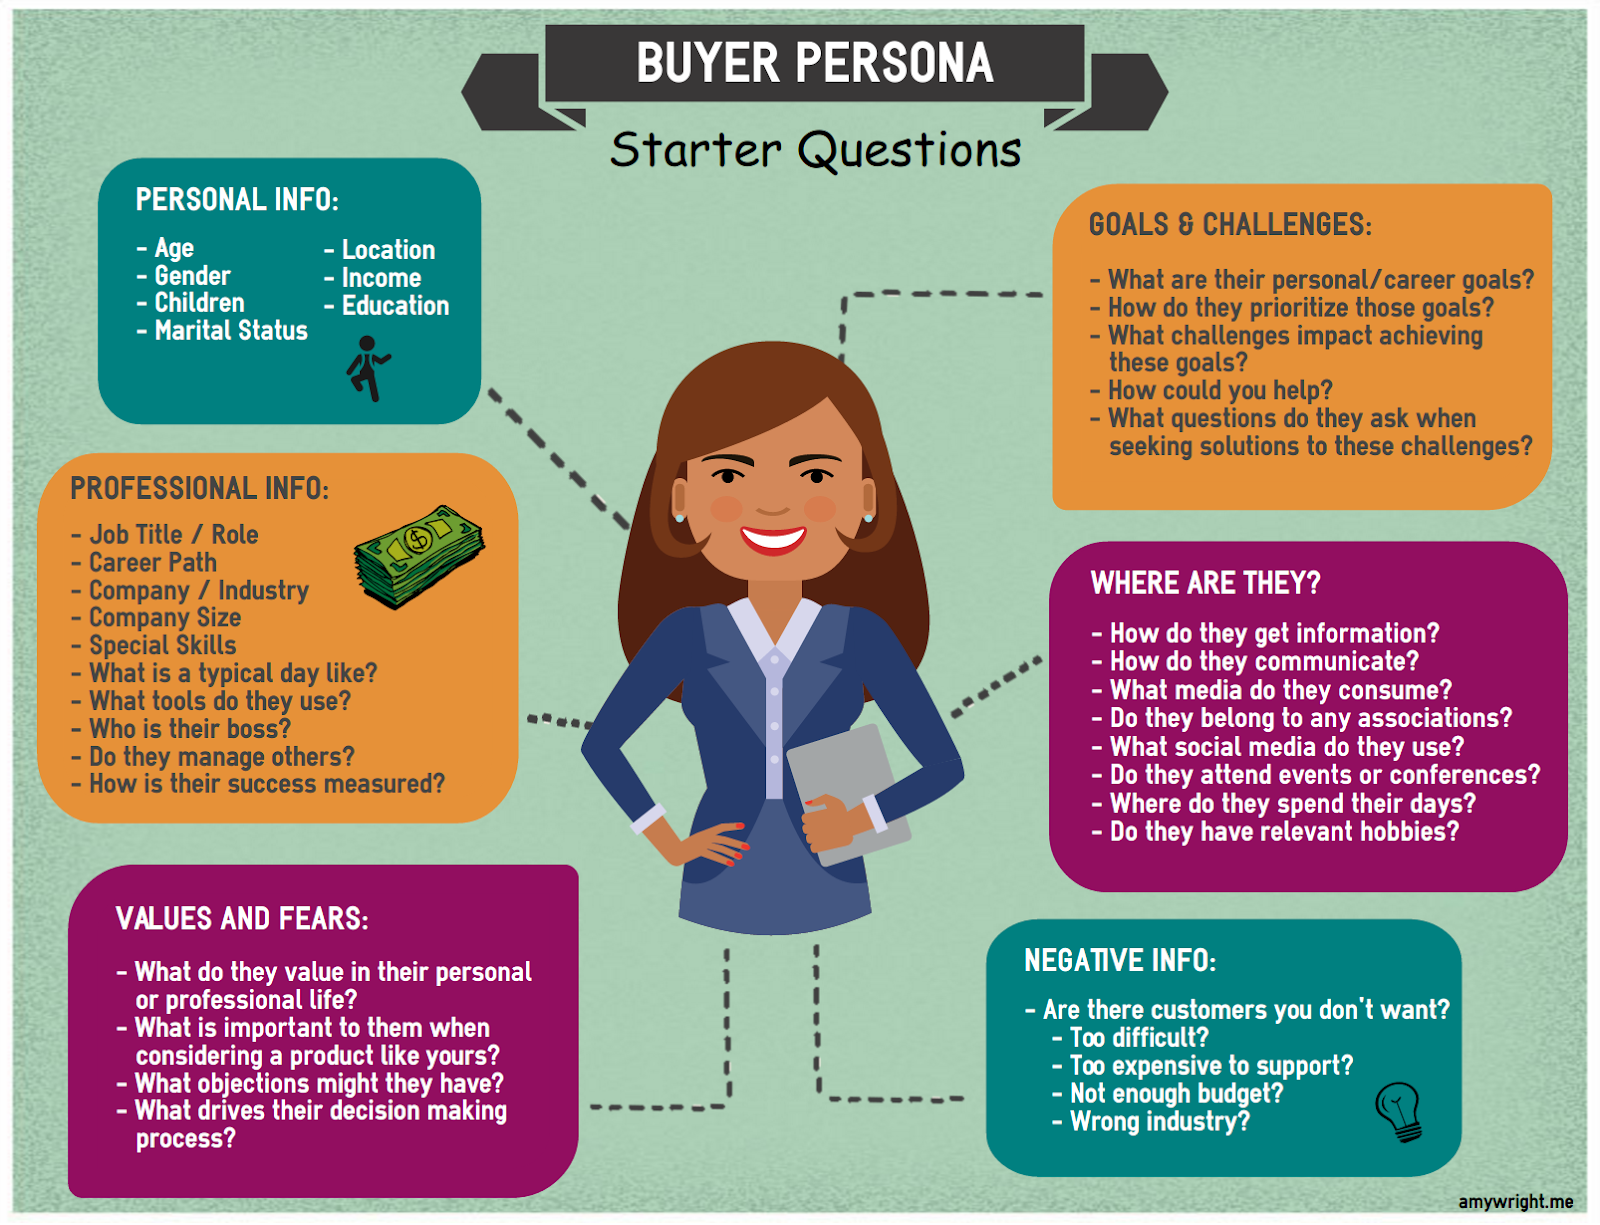 Why you need buyer personas